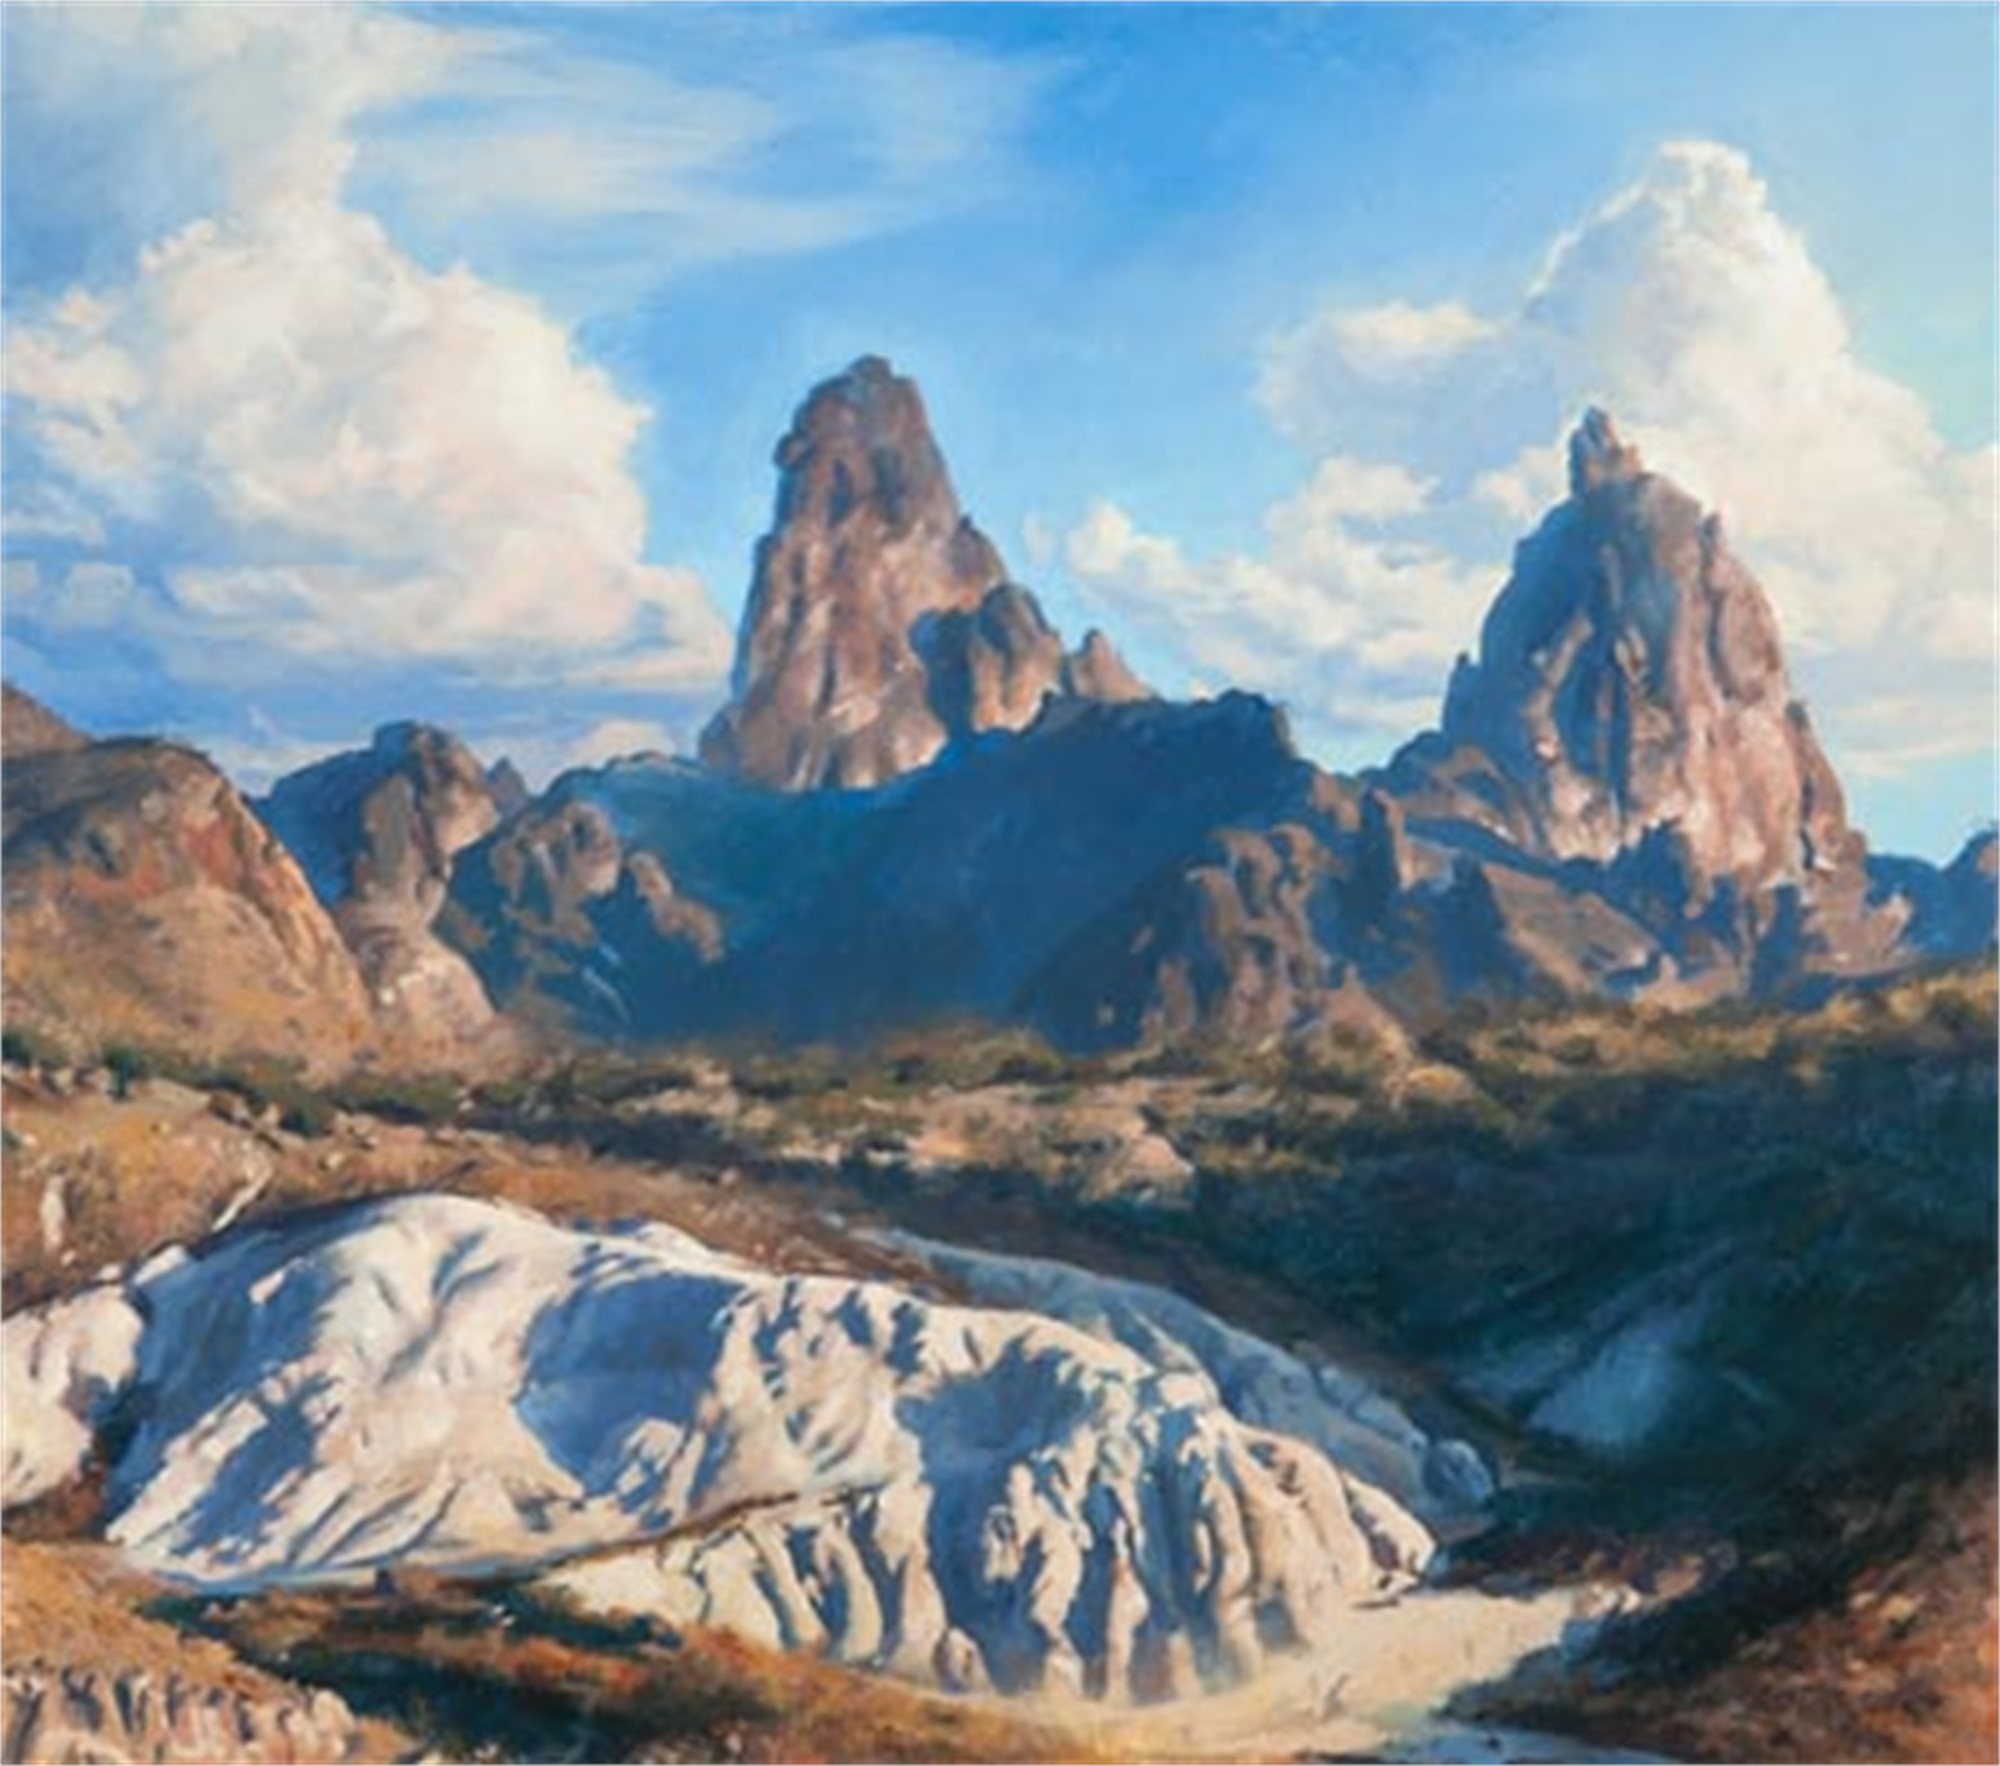 Mule Ears and Tuff Hill by Bob Stuth-Wade